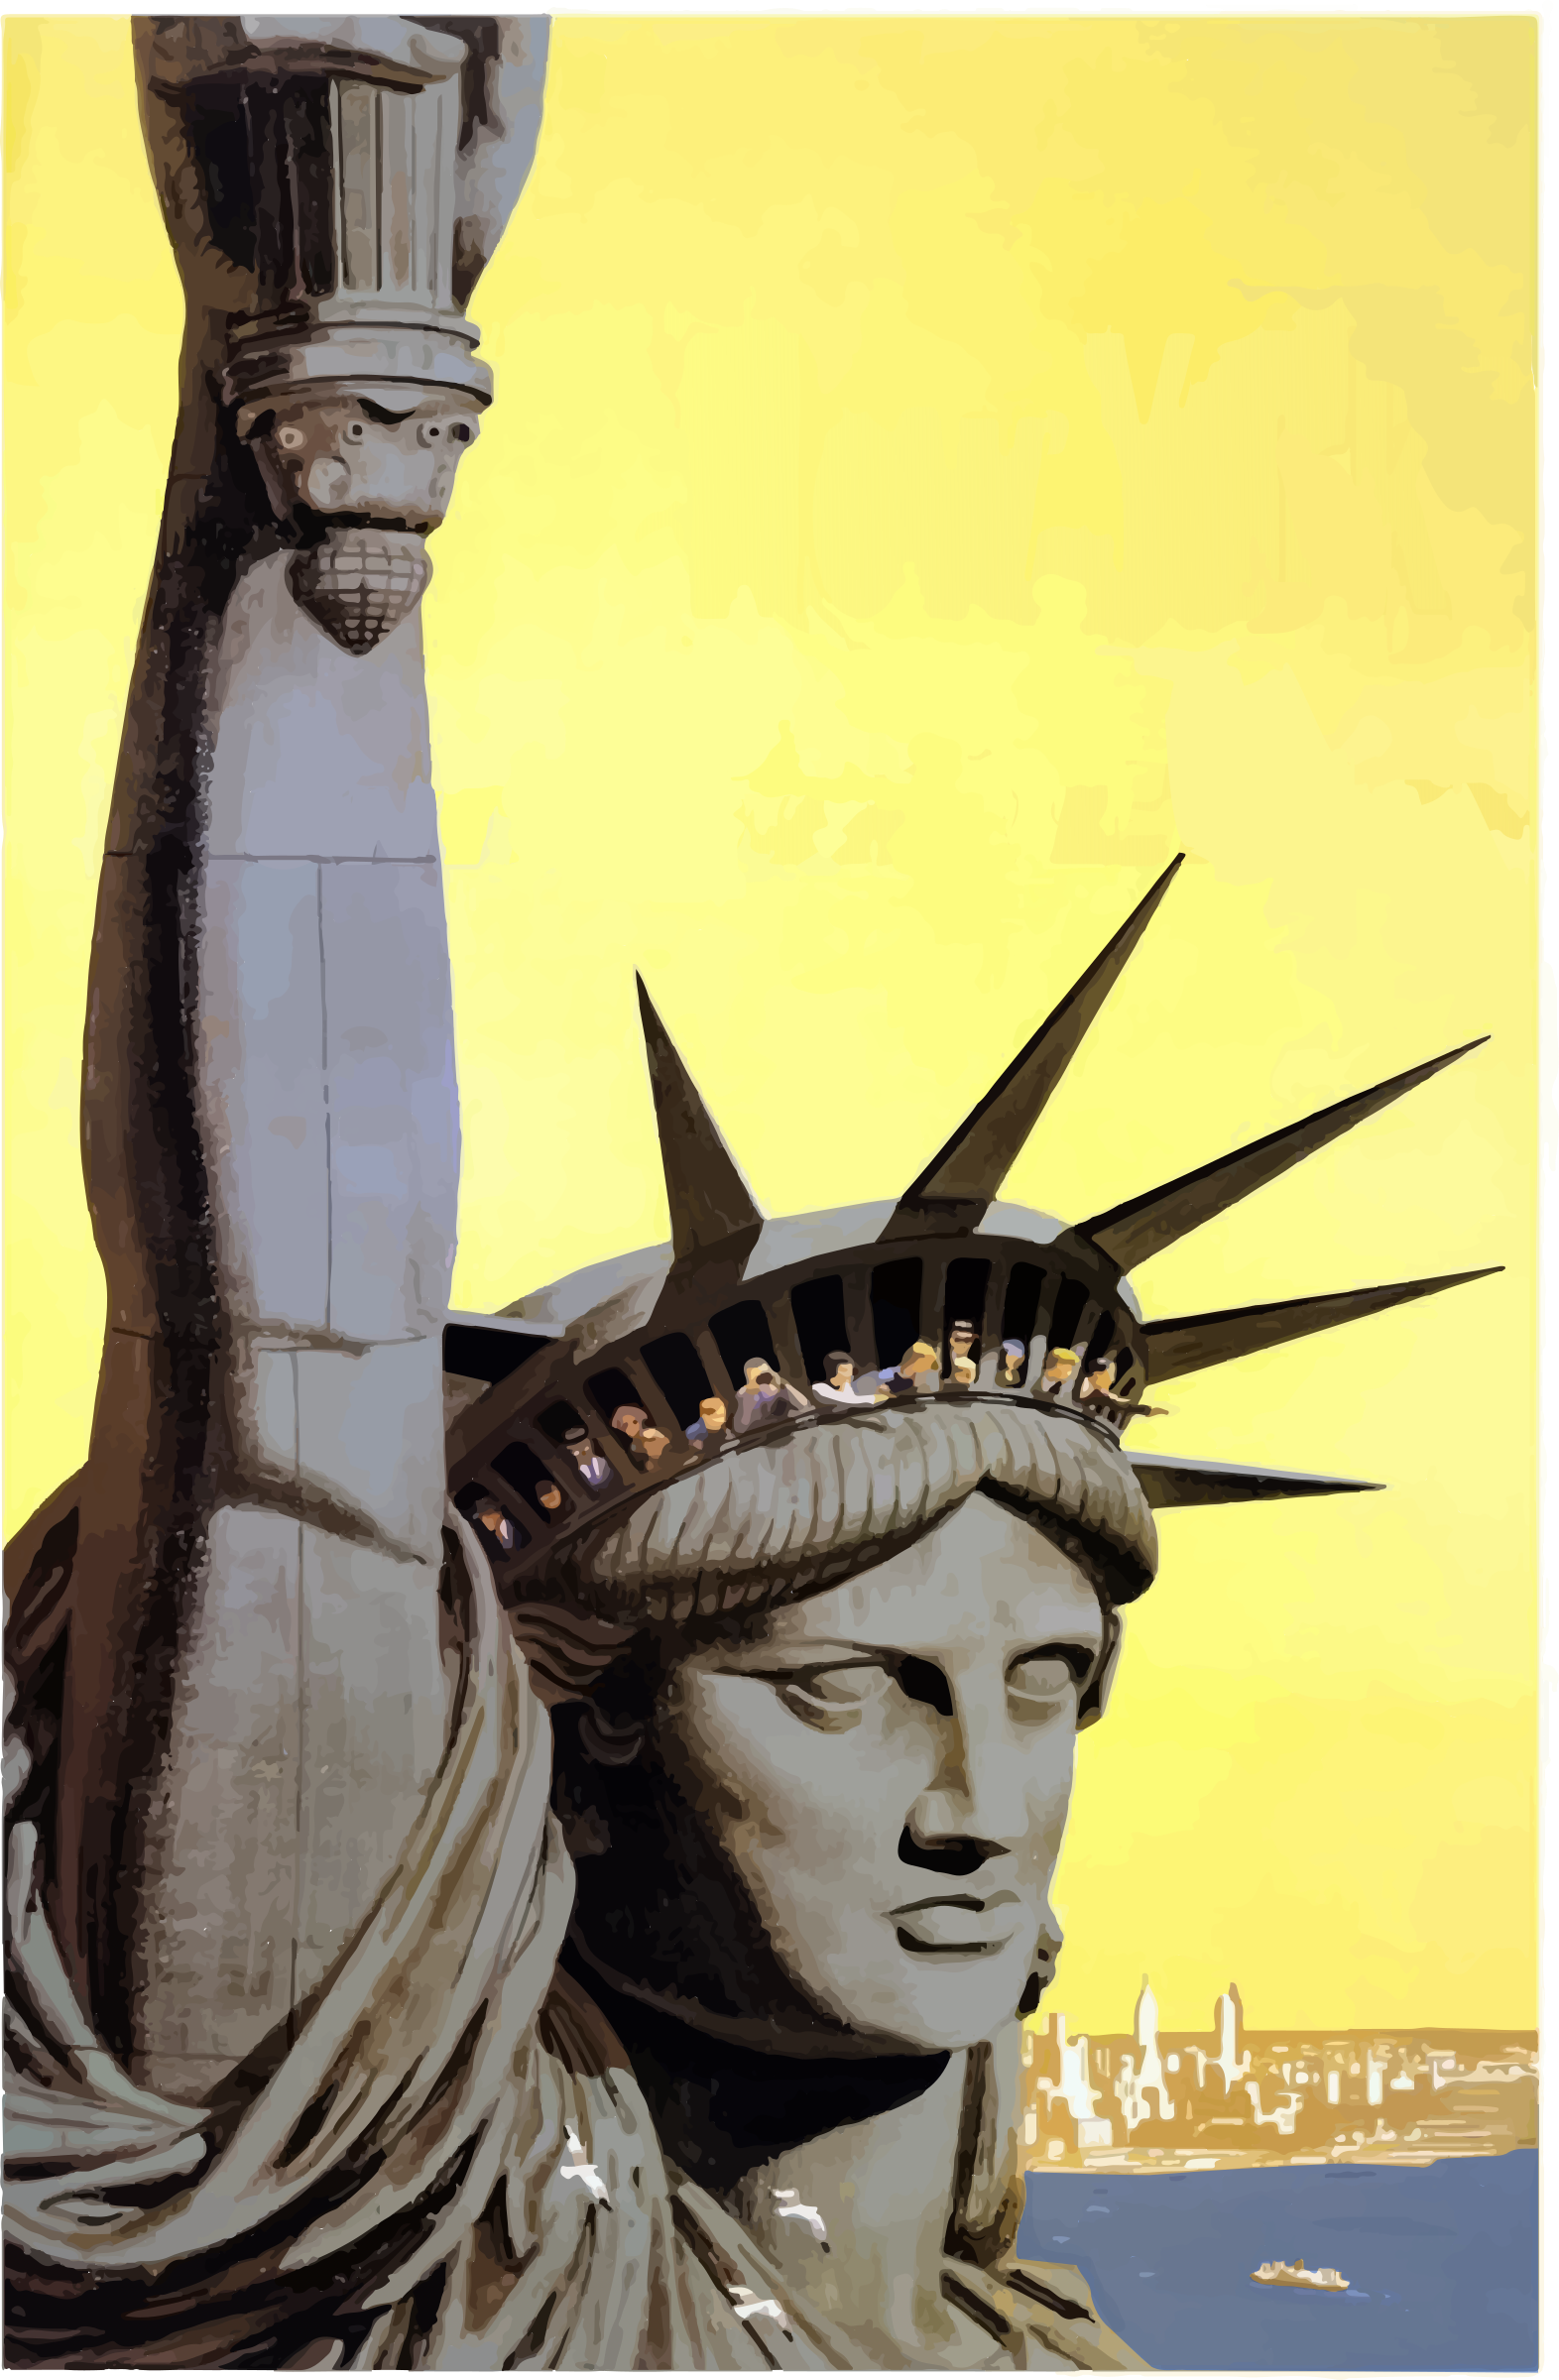 Statue of Liberty by j4p4n